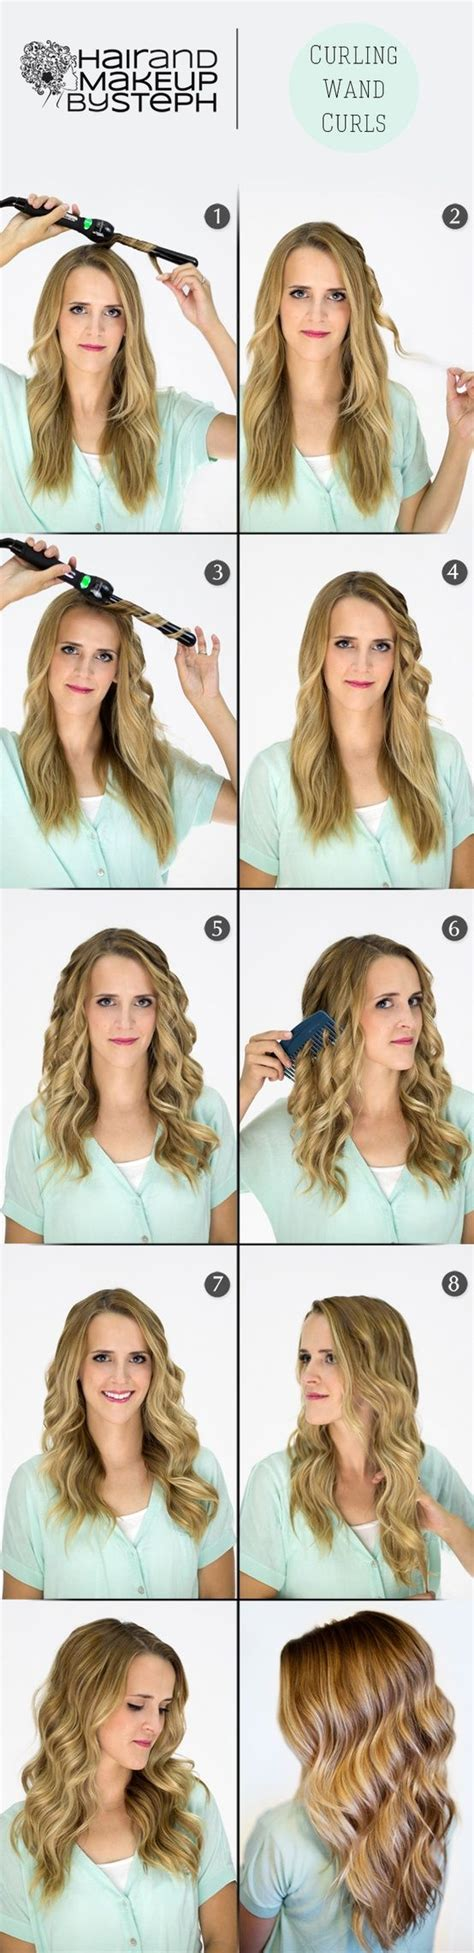 hair tutorial wand i need to actually use my curling wand i could use this